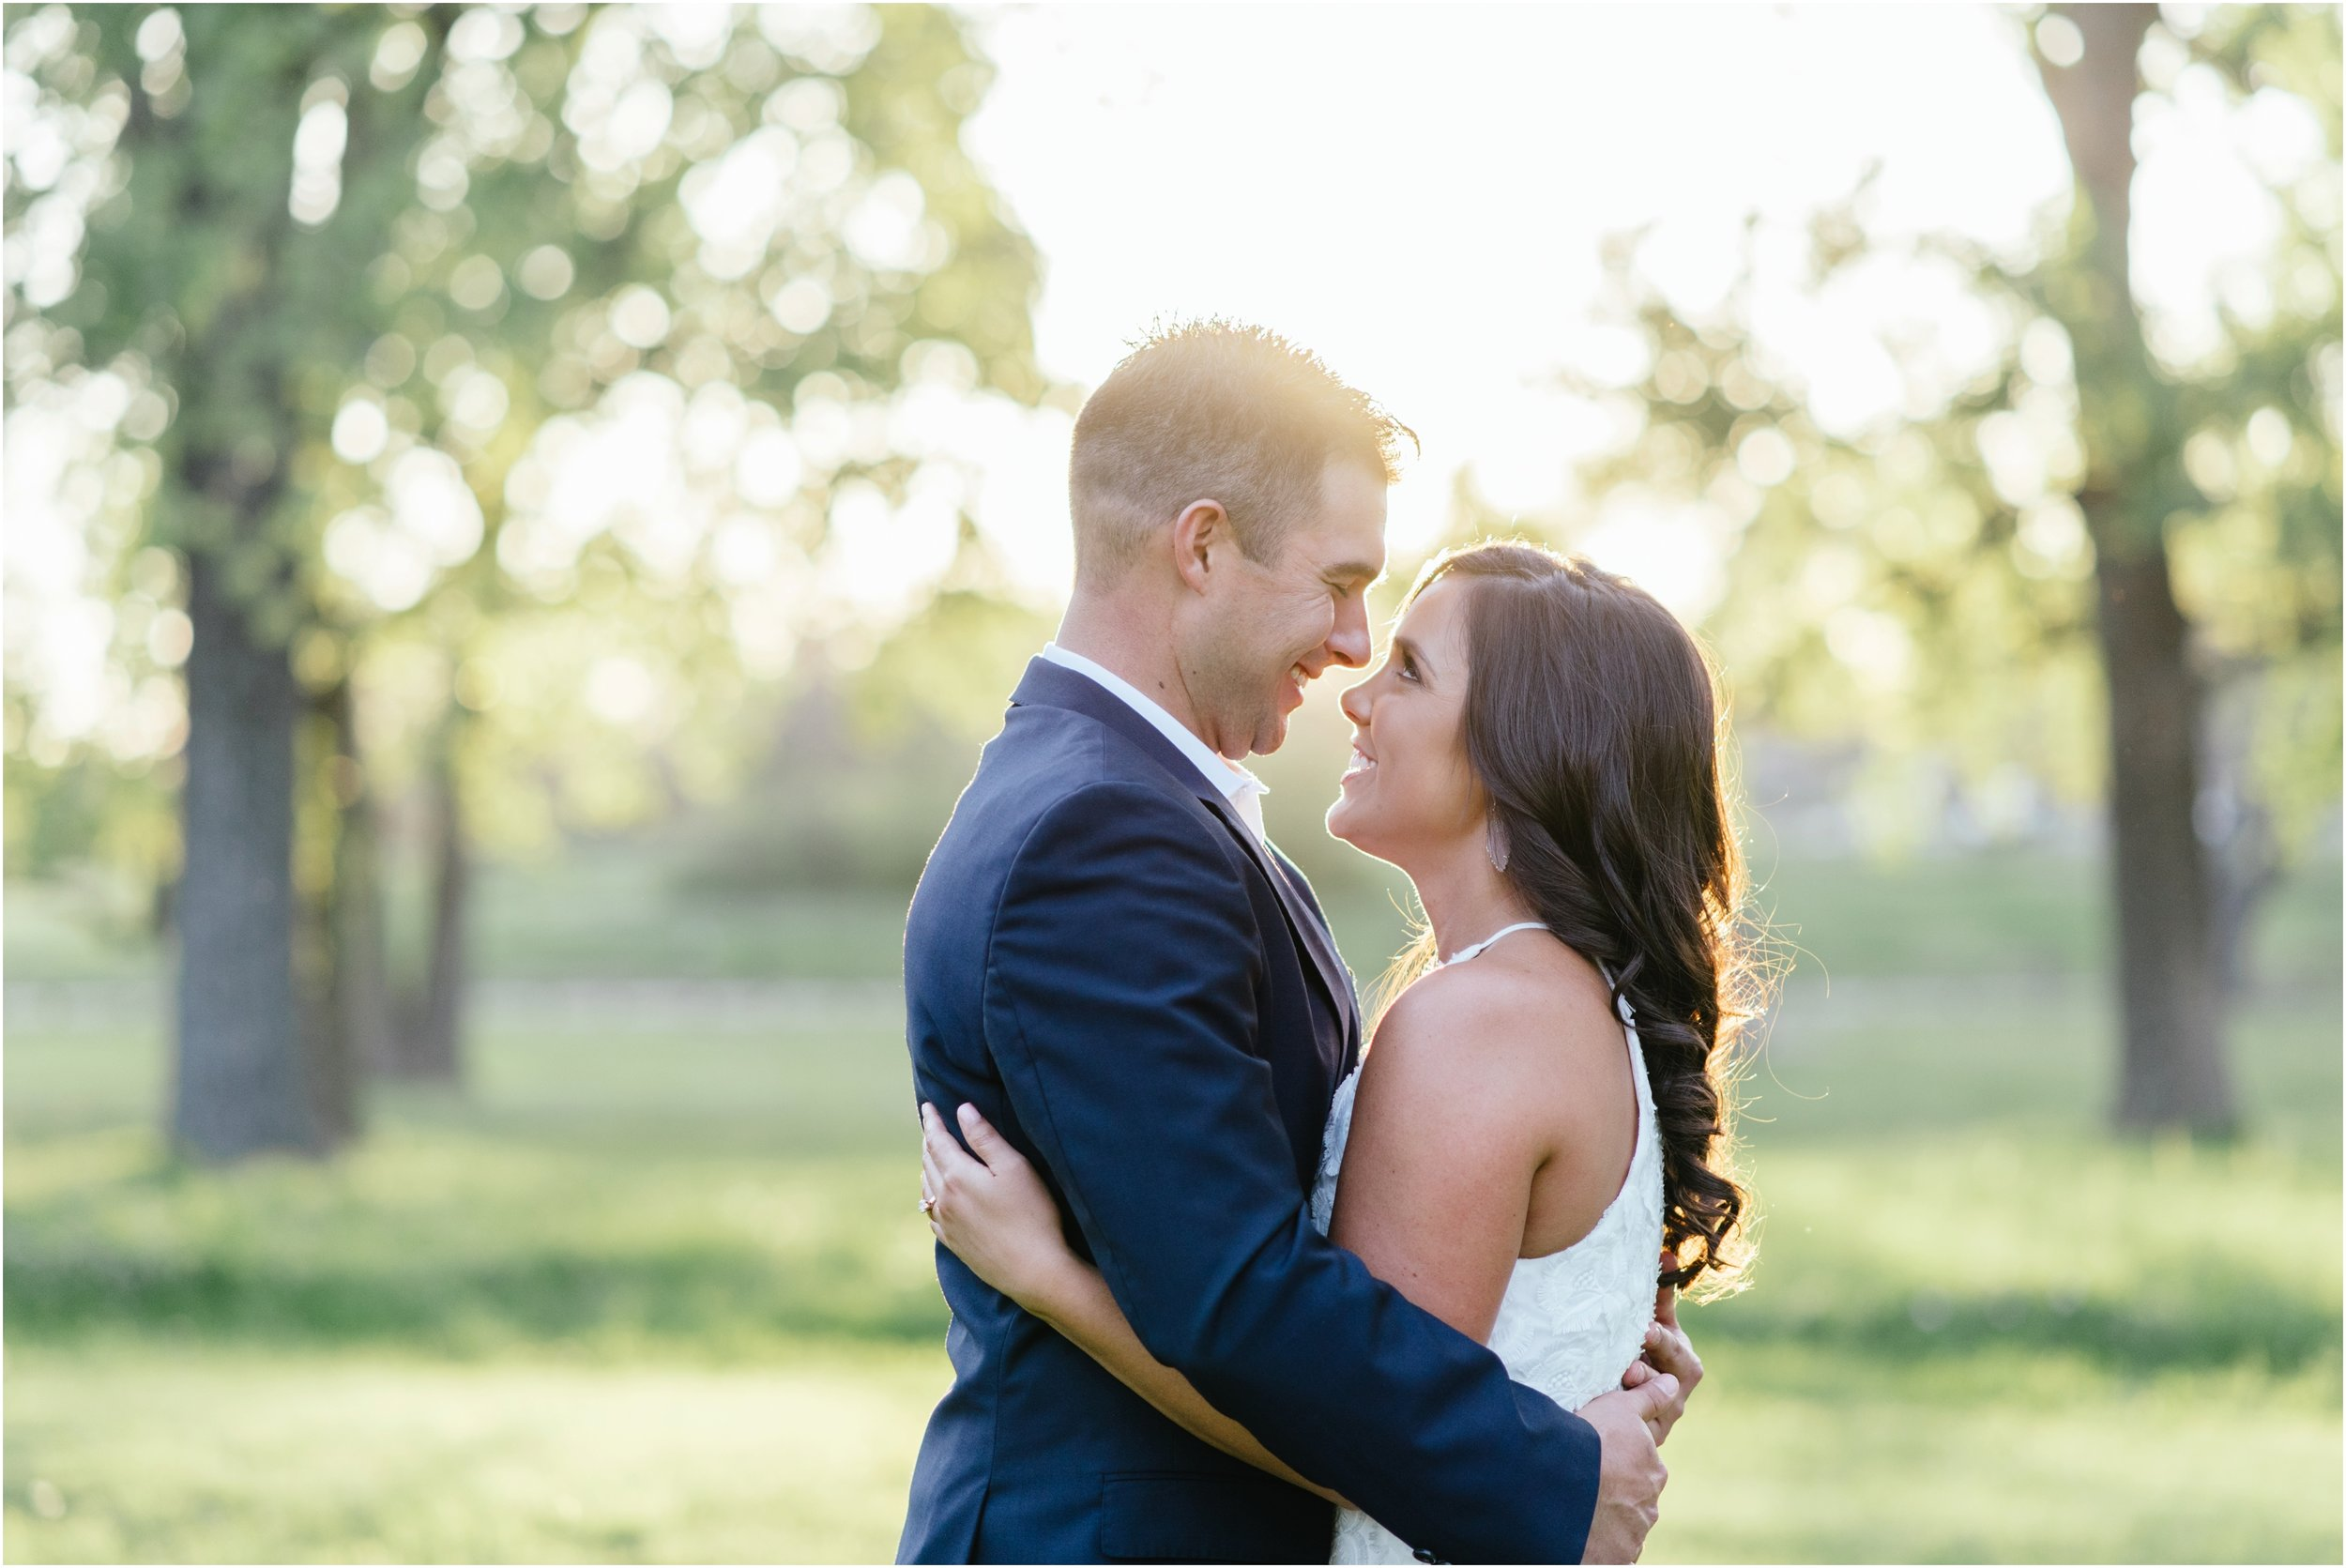 dallasweddingphotographer_texasweddingphotographer_texasweddingphotographers_dallasweddingphotographer_mattandjulieweddings_0858.jpg